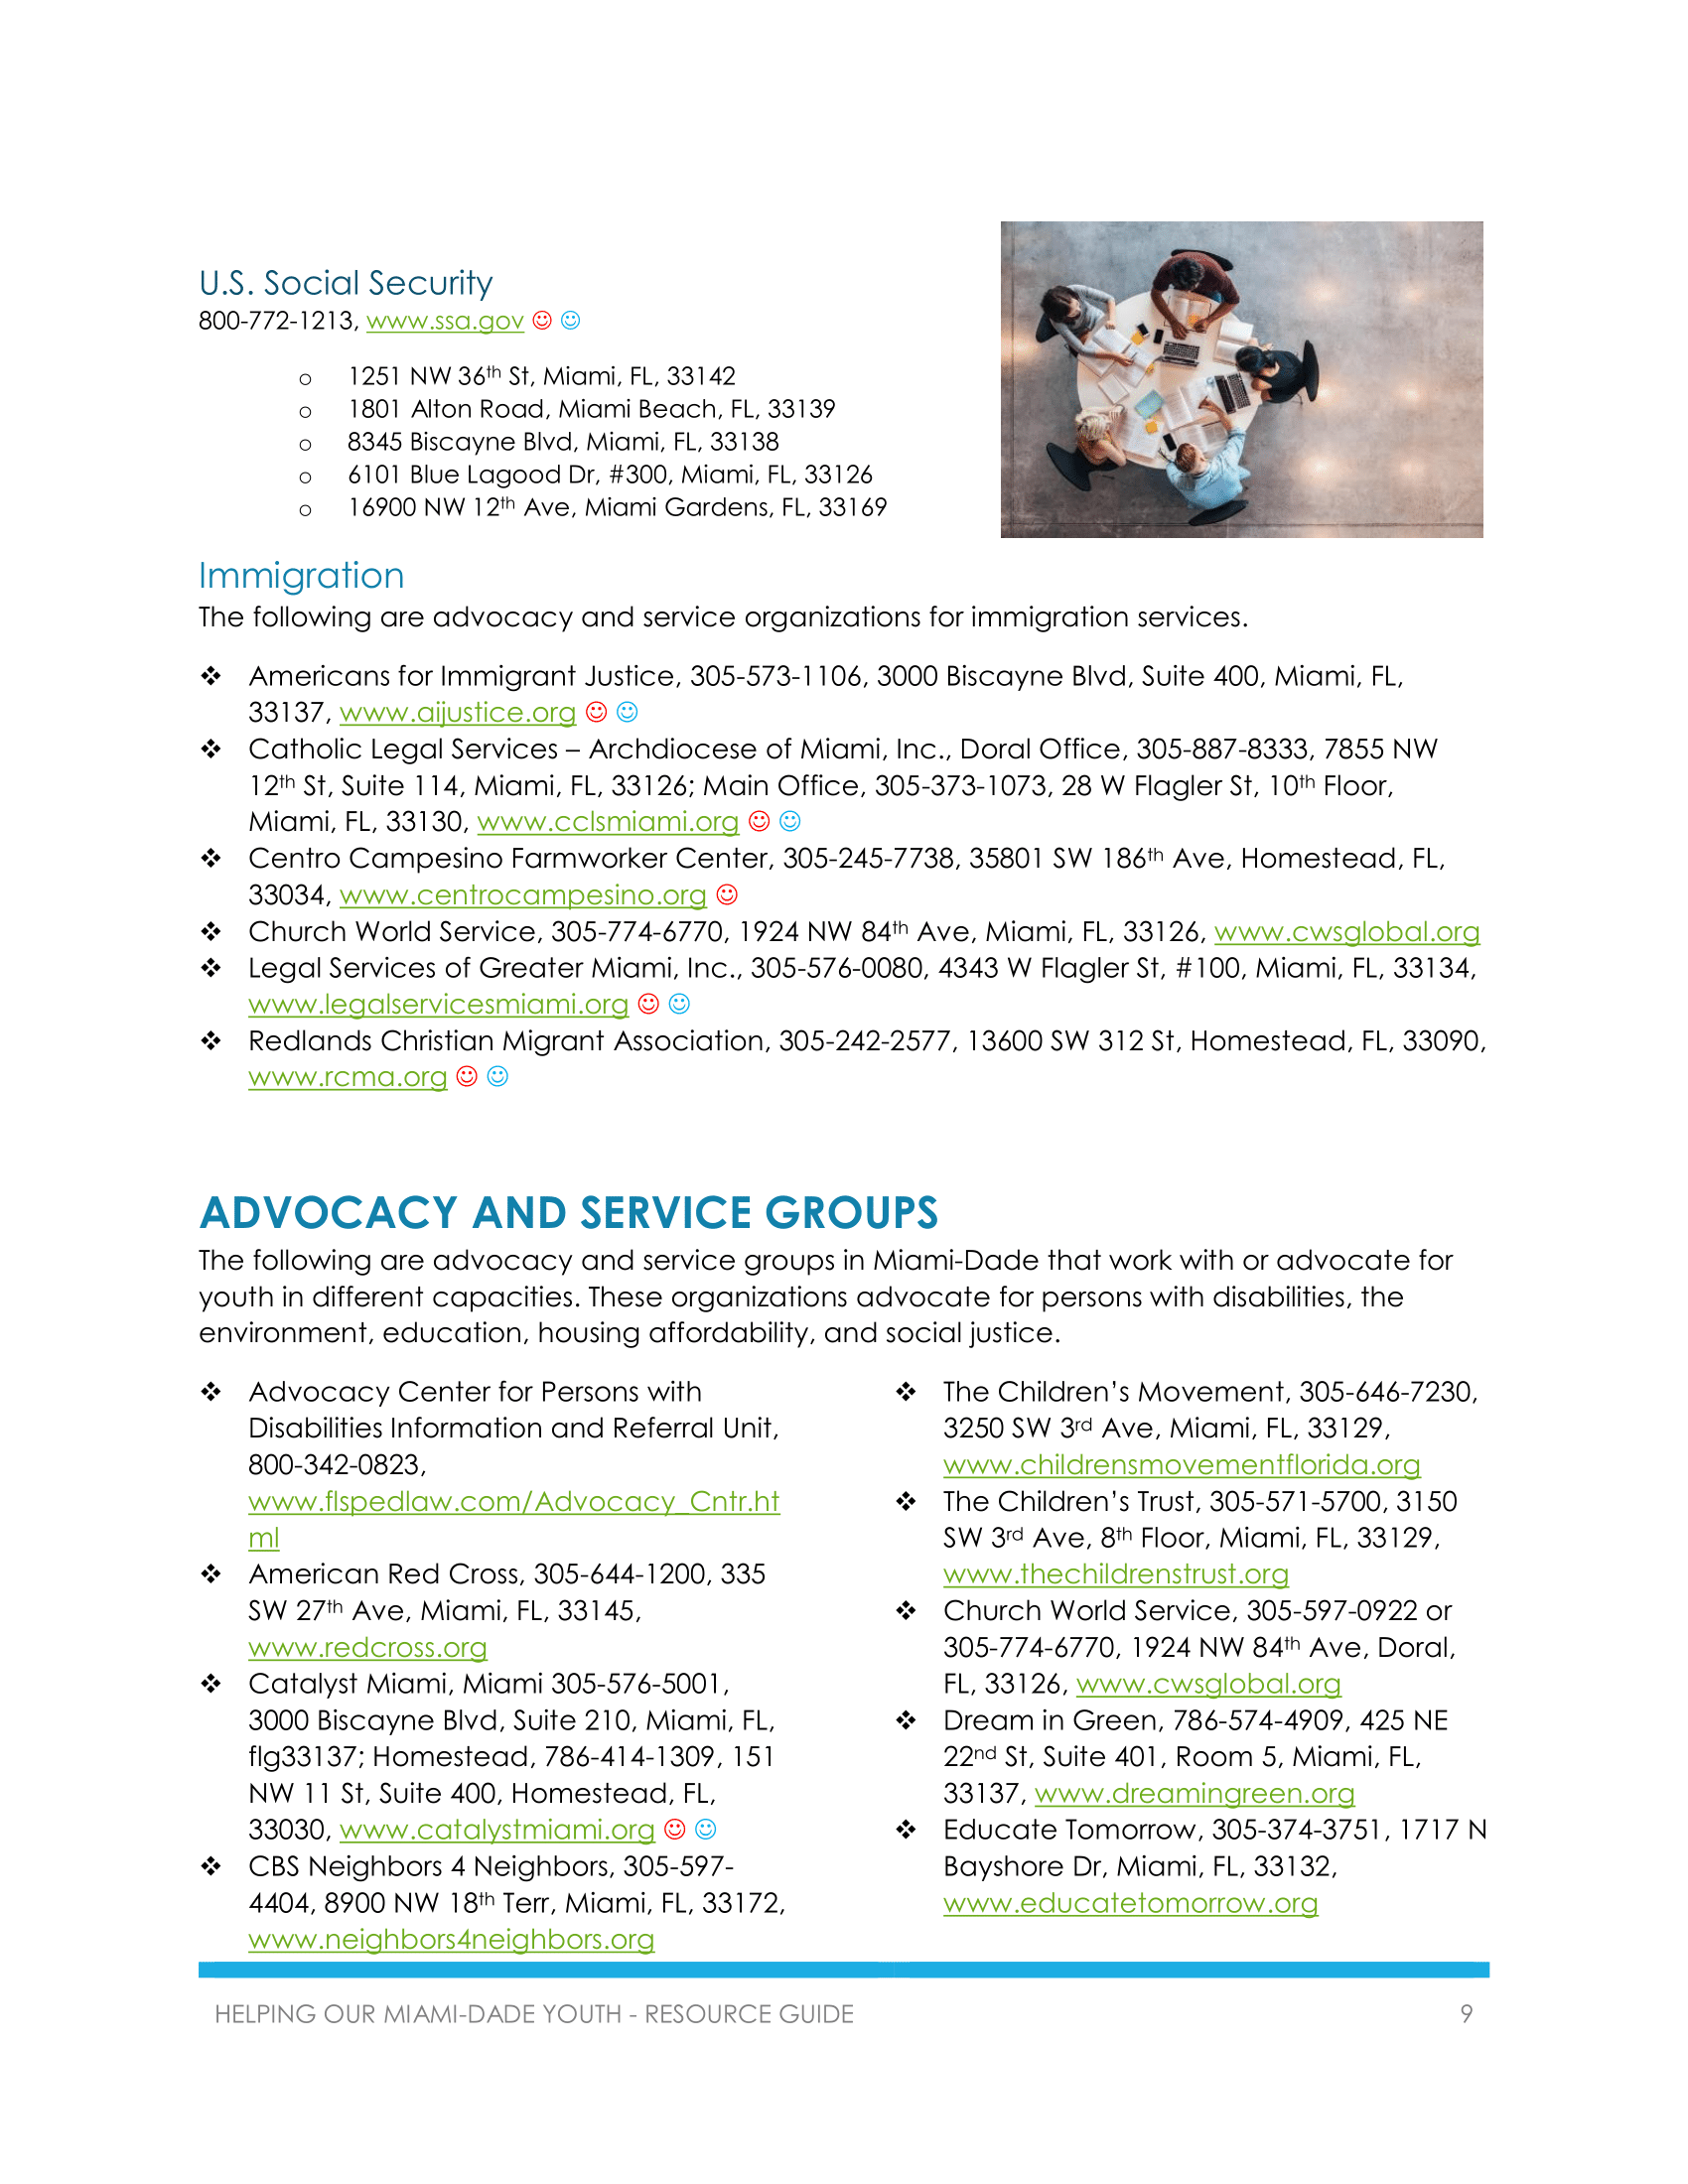 Youth Resource Guide - May 2018-14.png